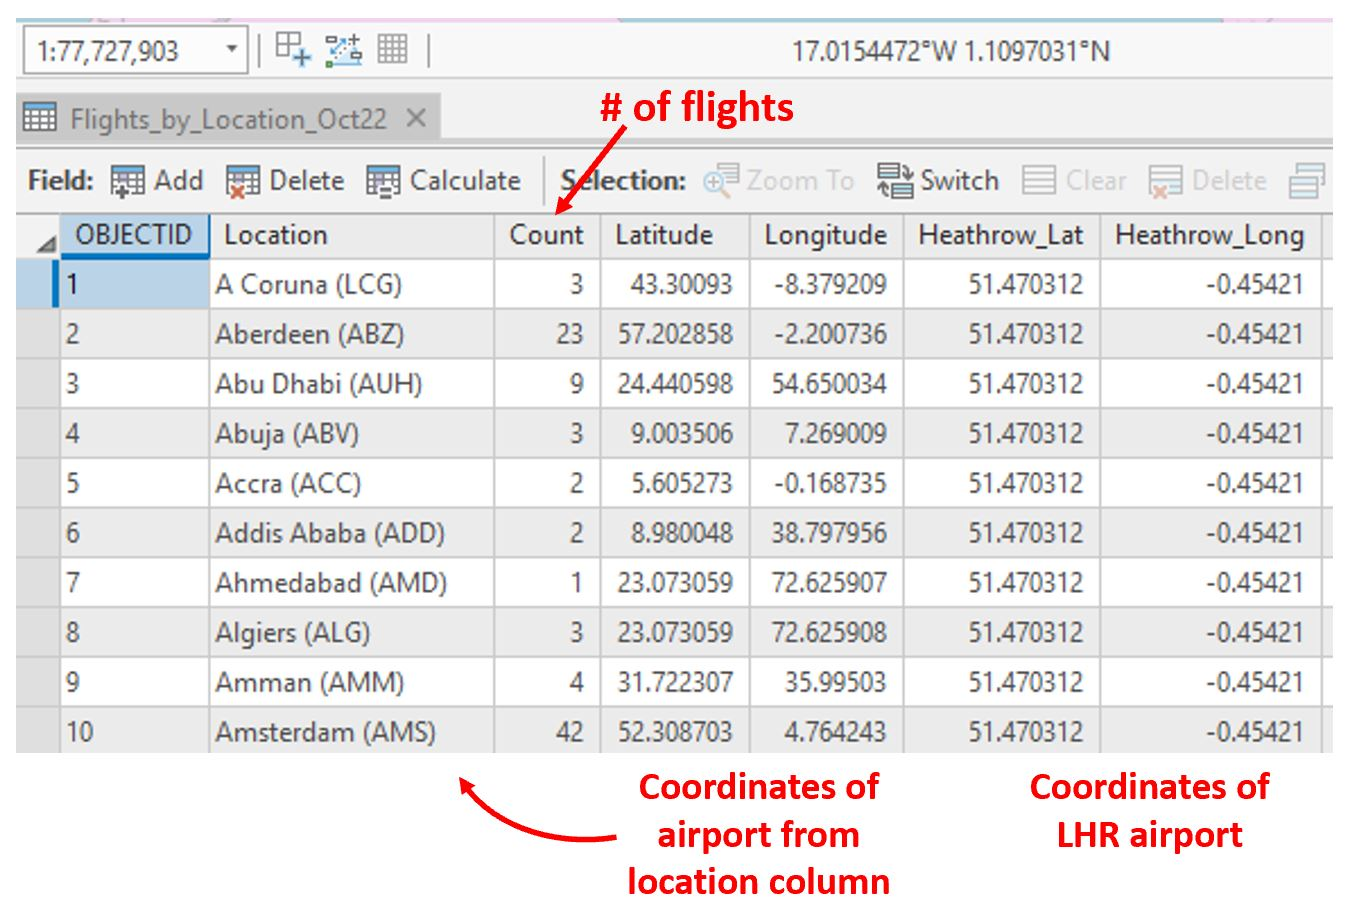 annotated screen shot of Flight data table: # of flights (count), coordinates of airport from location column, coordinates of LHR airport